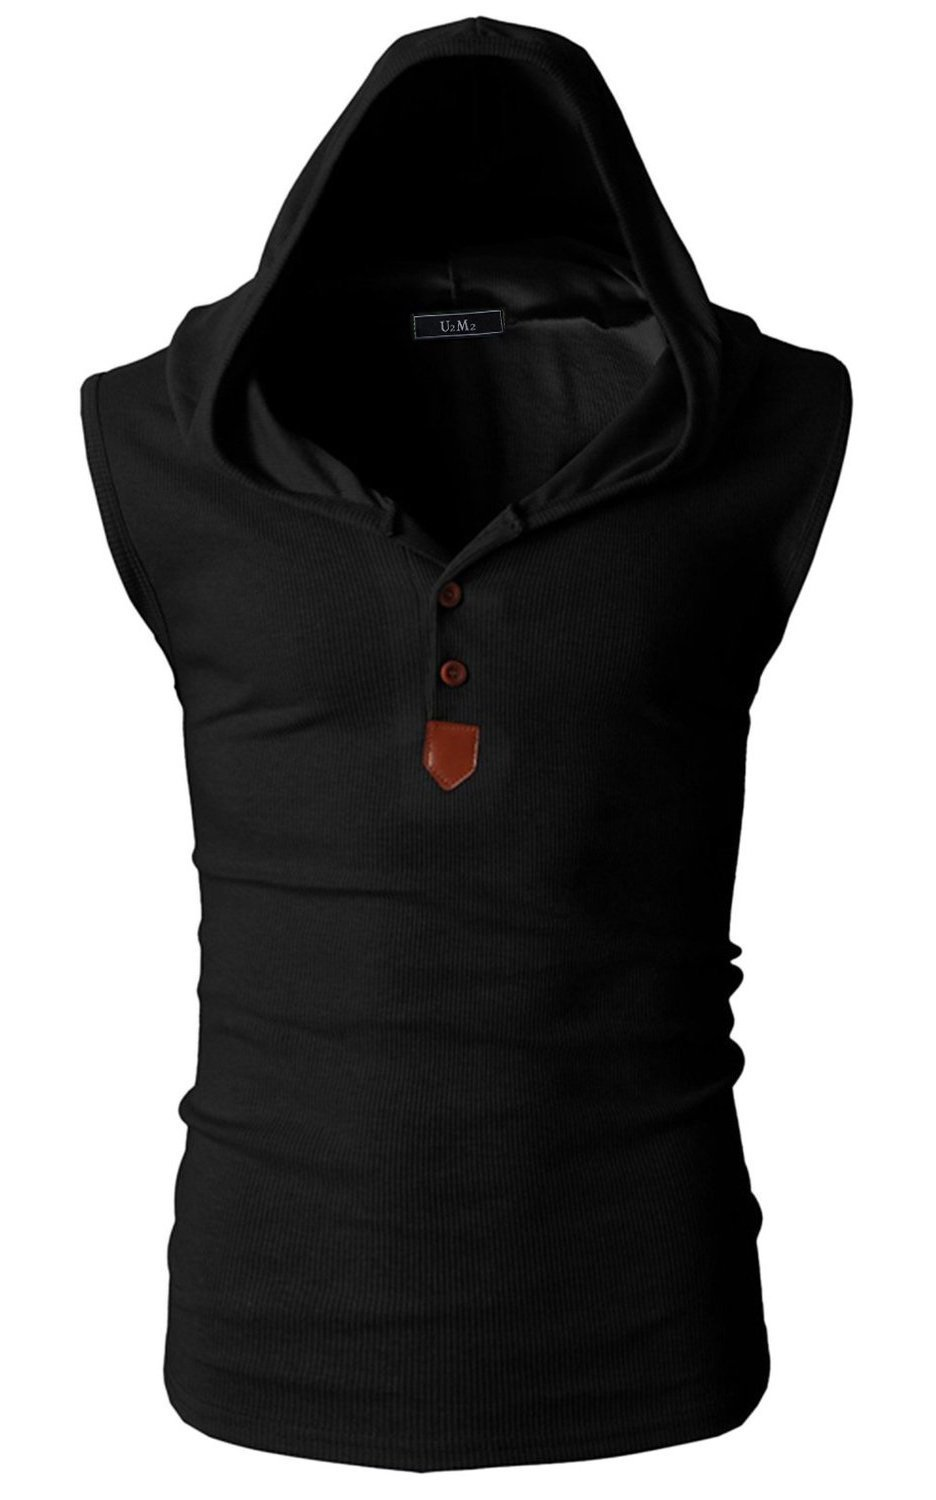 Angcoco Mens Fashion Pullover Sleeveless Sweater Hoodie Shirts Tops